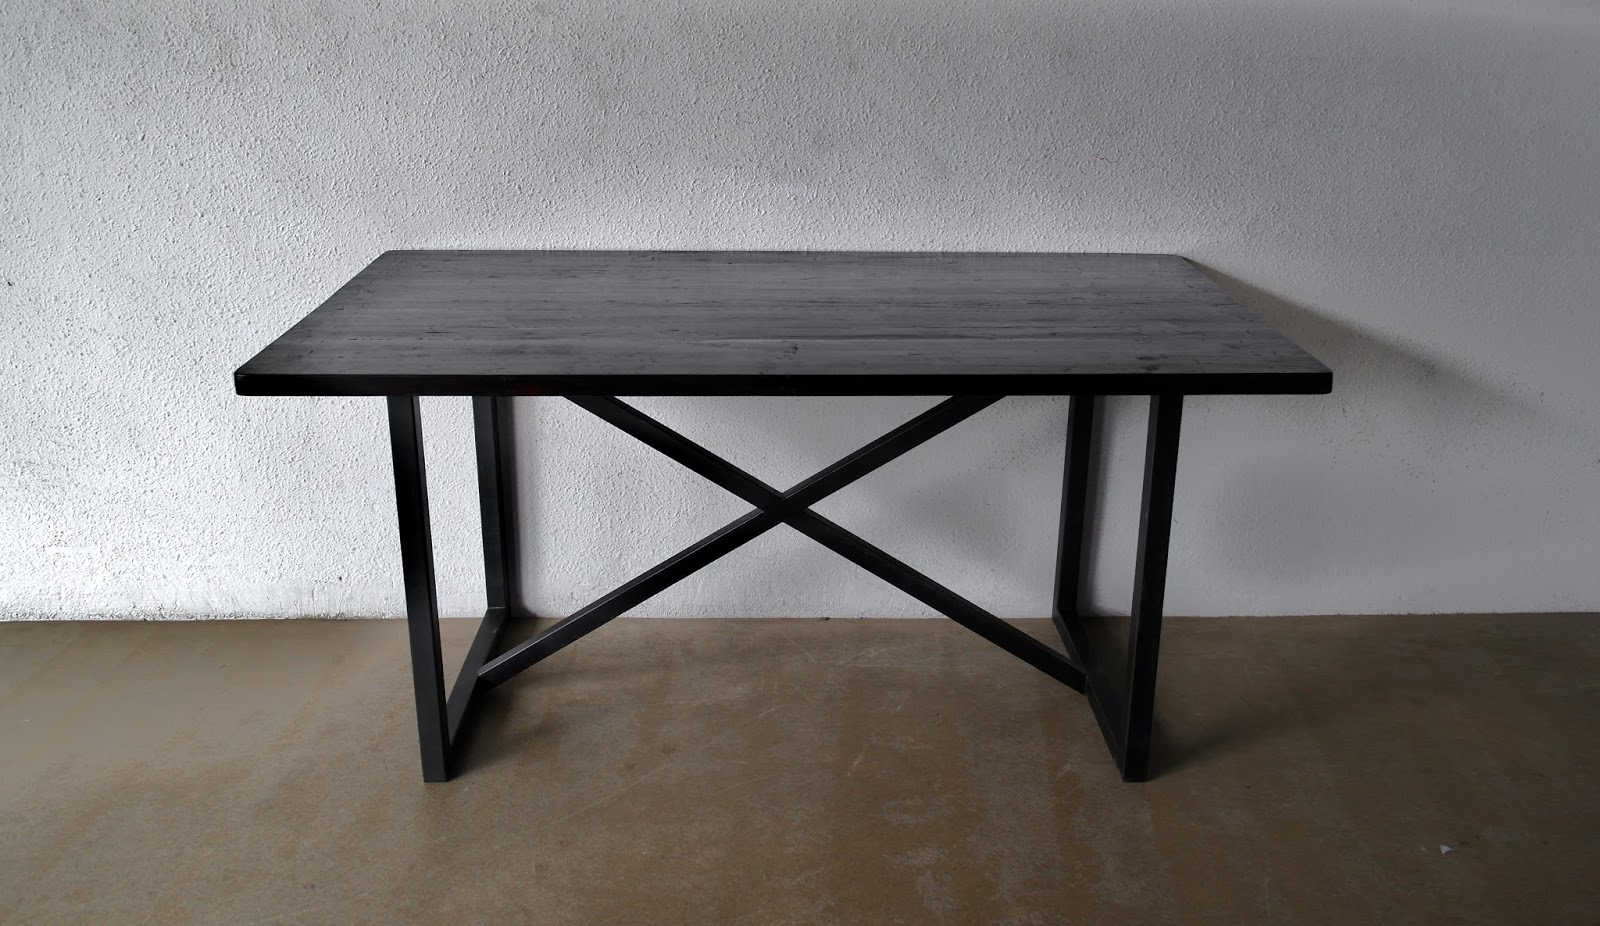 Superb img of Dining table with metal legs and 3 cm thick timber top stained dark. with #5D4E40 color and 1600x926 pixels